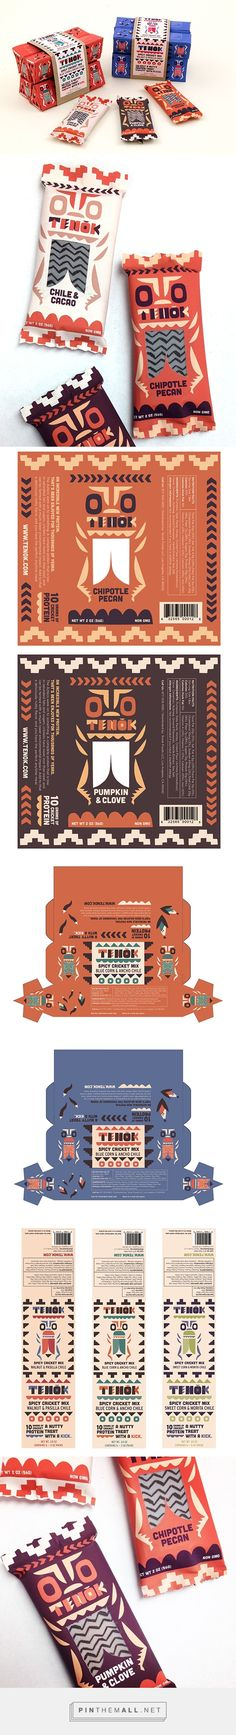 Tenok Cricket Snacks on Behance by Alexander Vidal curated by Packaging Diva PD. Yummy cricket (insect) snack packaging : )